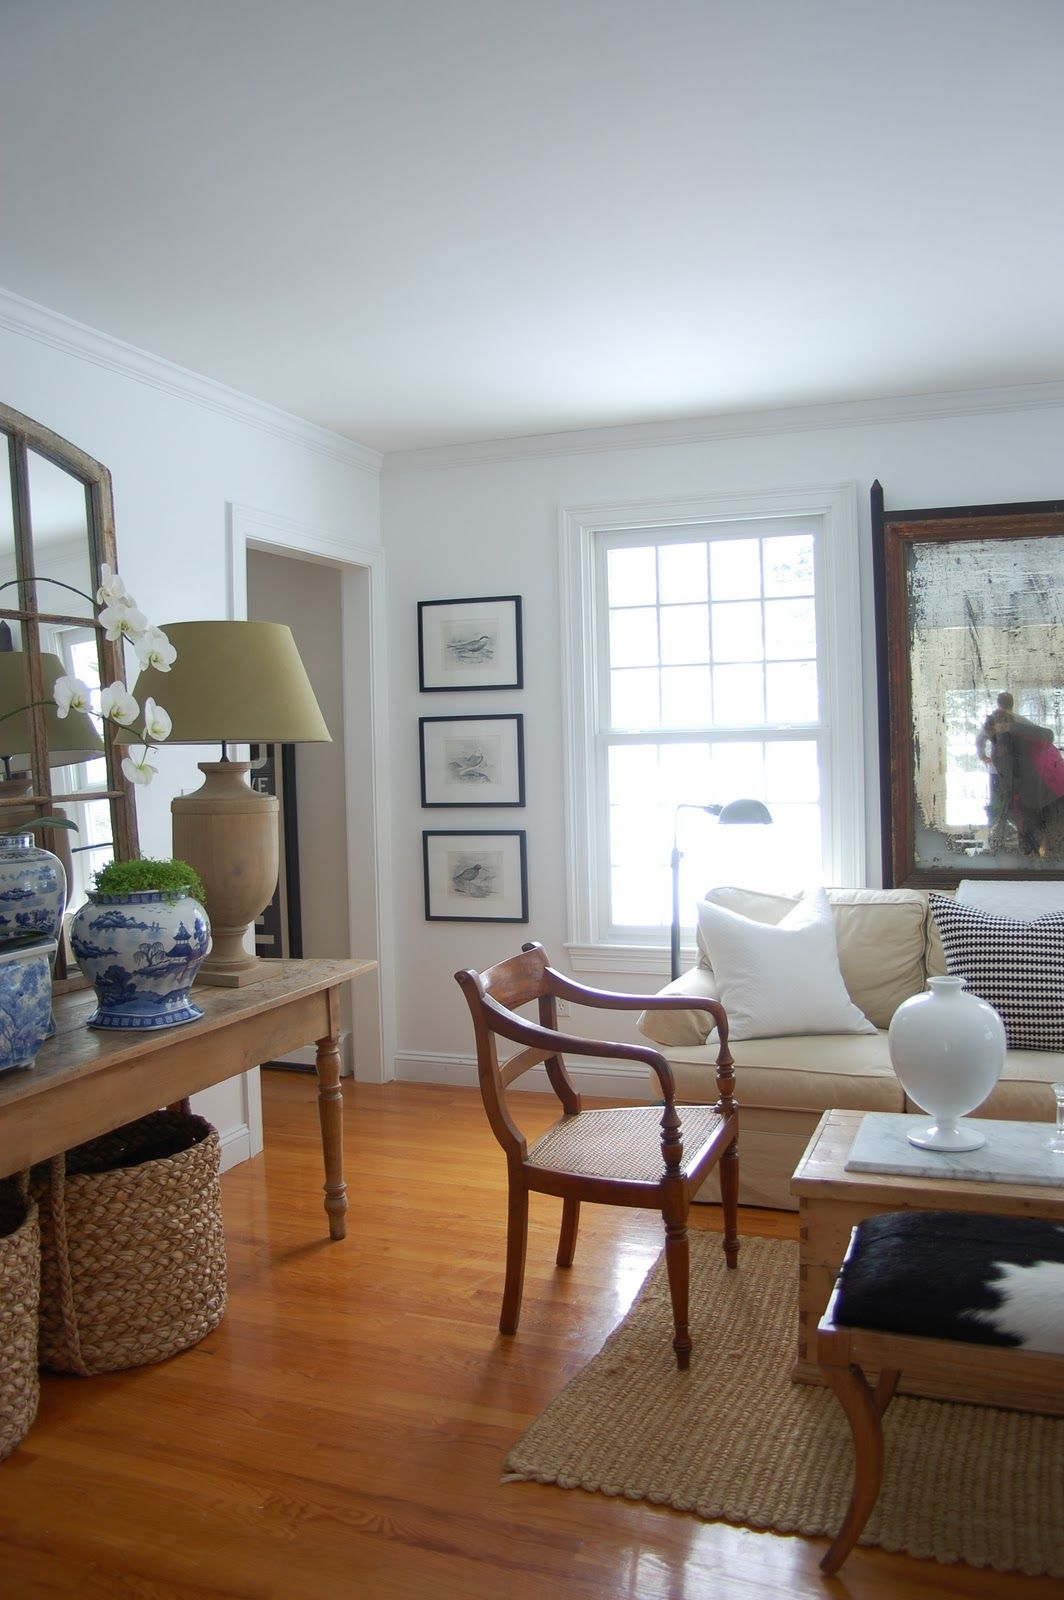 Cozy Casual Decorating Style: Console Table W/windowframe Mirror, Baskets, Blue/white